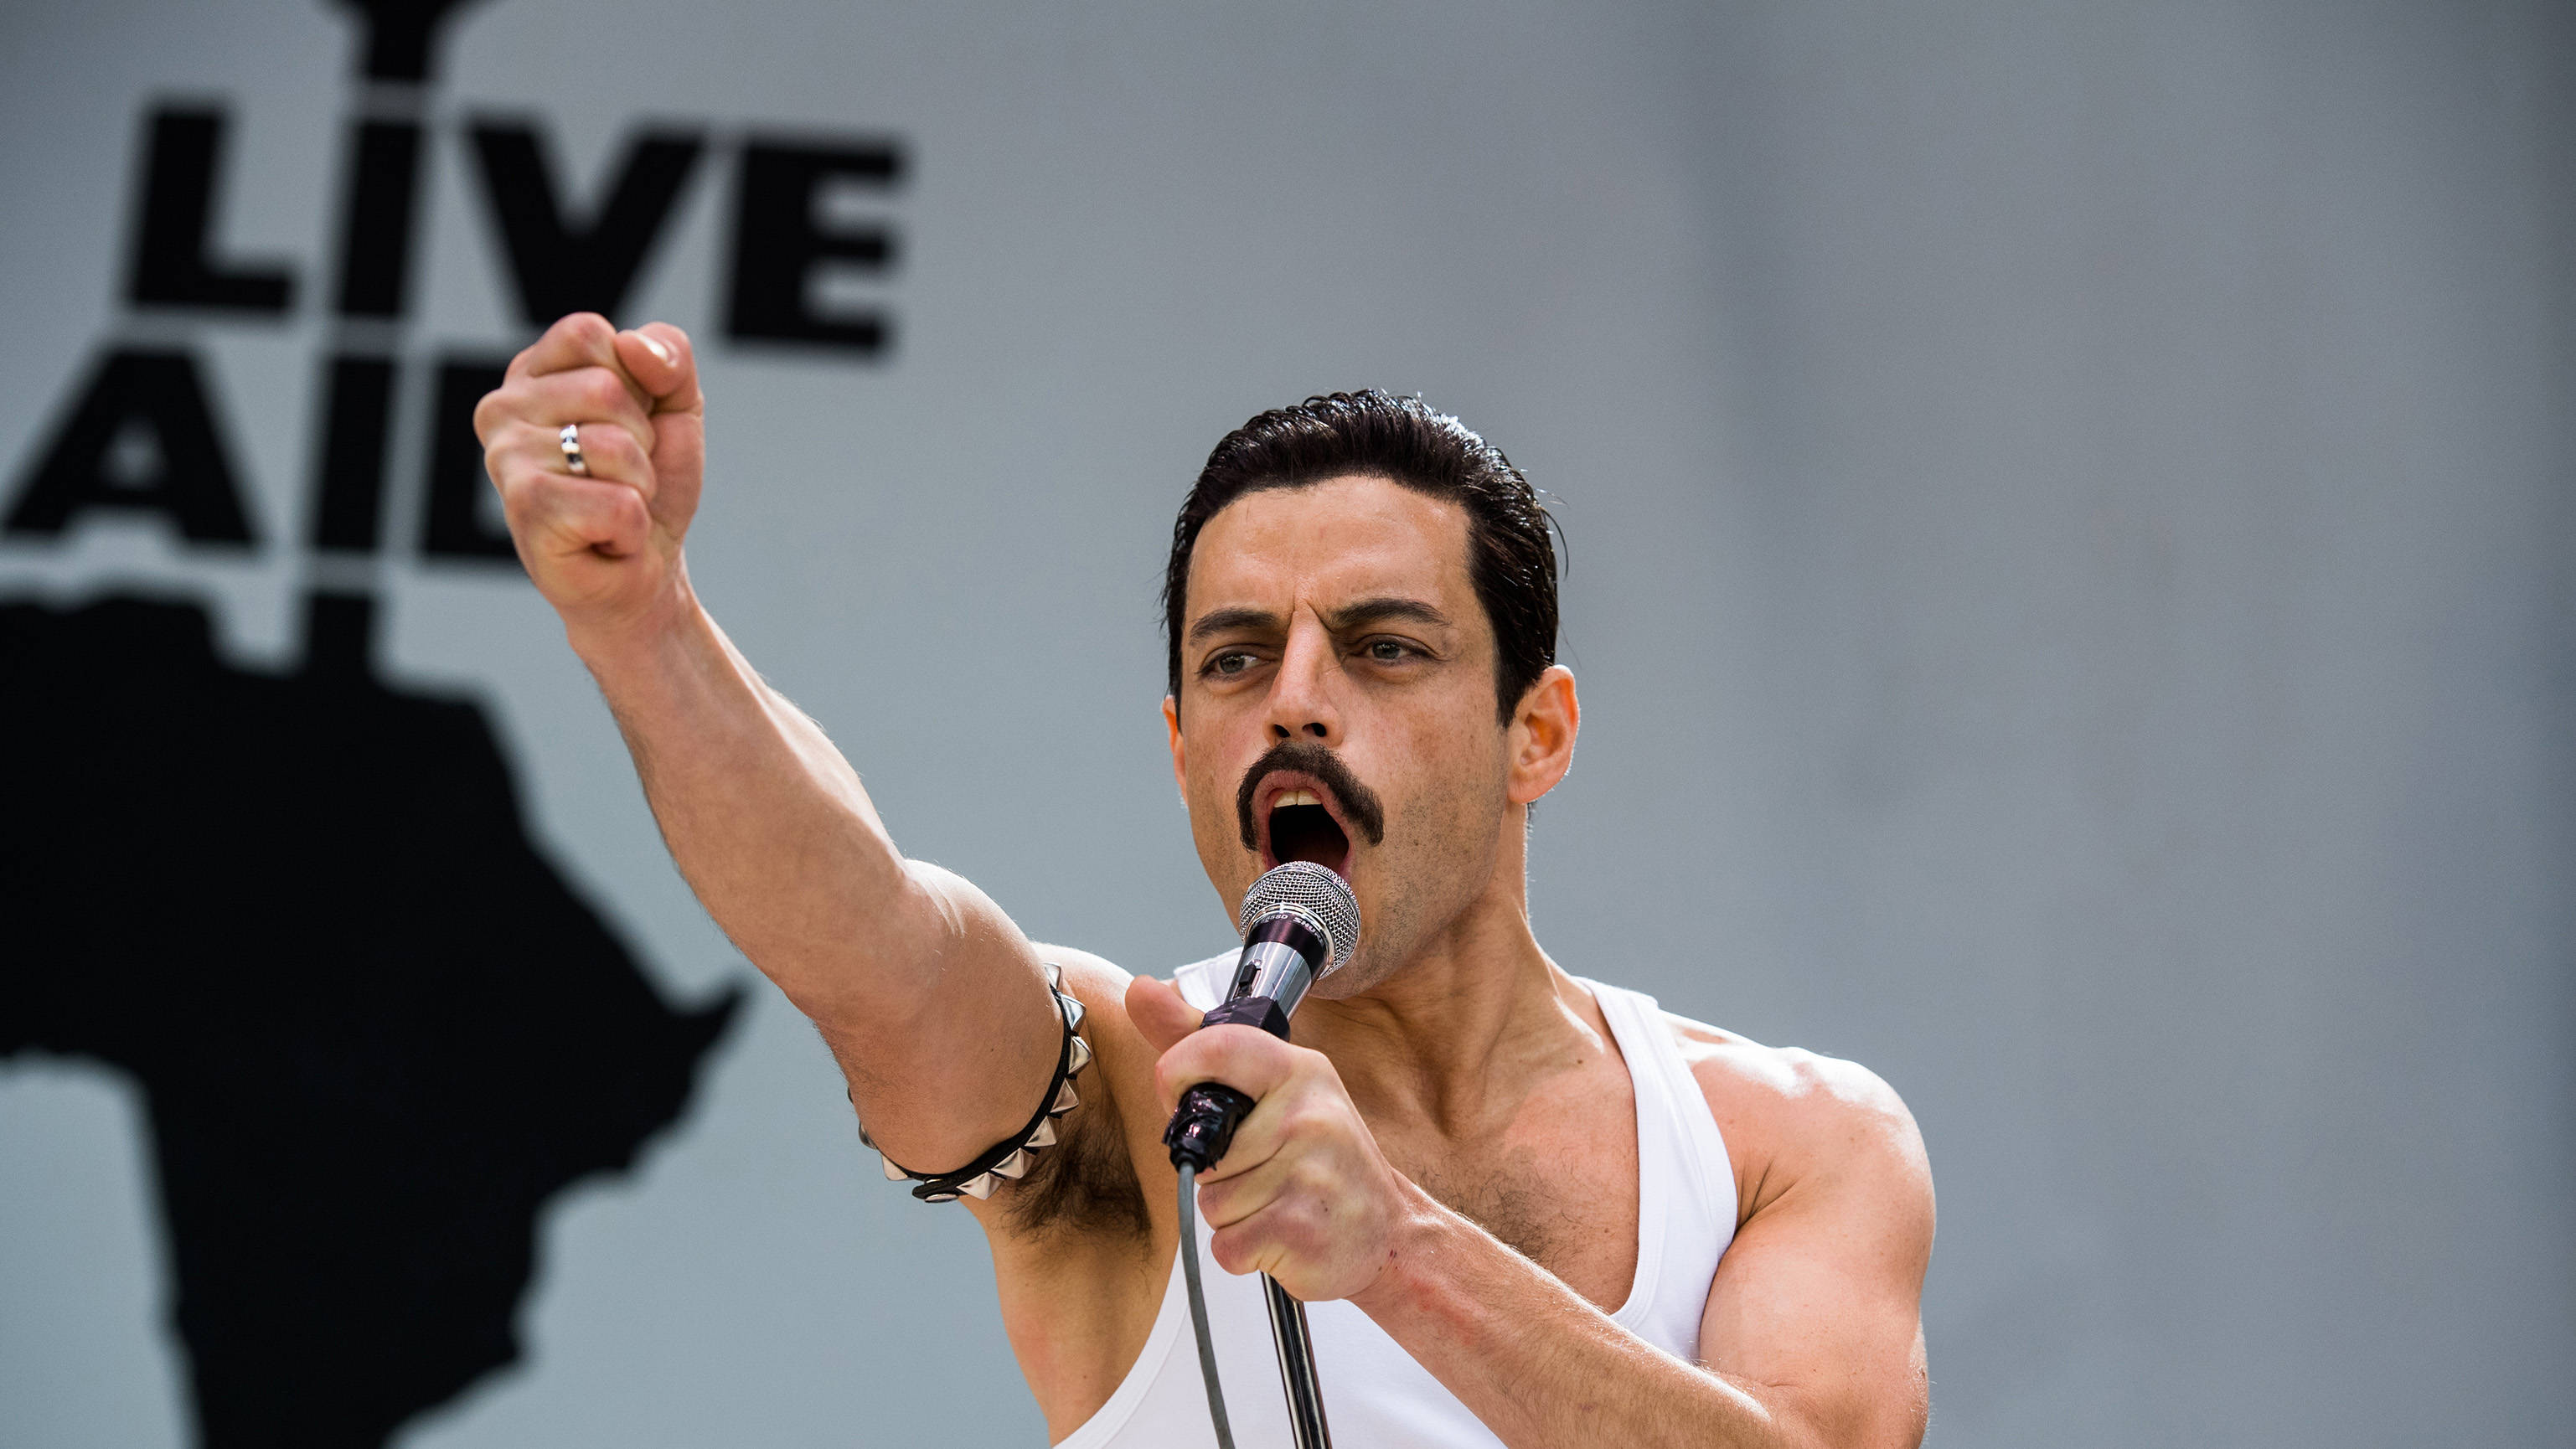 Does Rami Malek sing in Bohemian Rhapsody? - Radio X